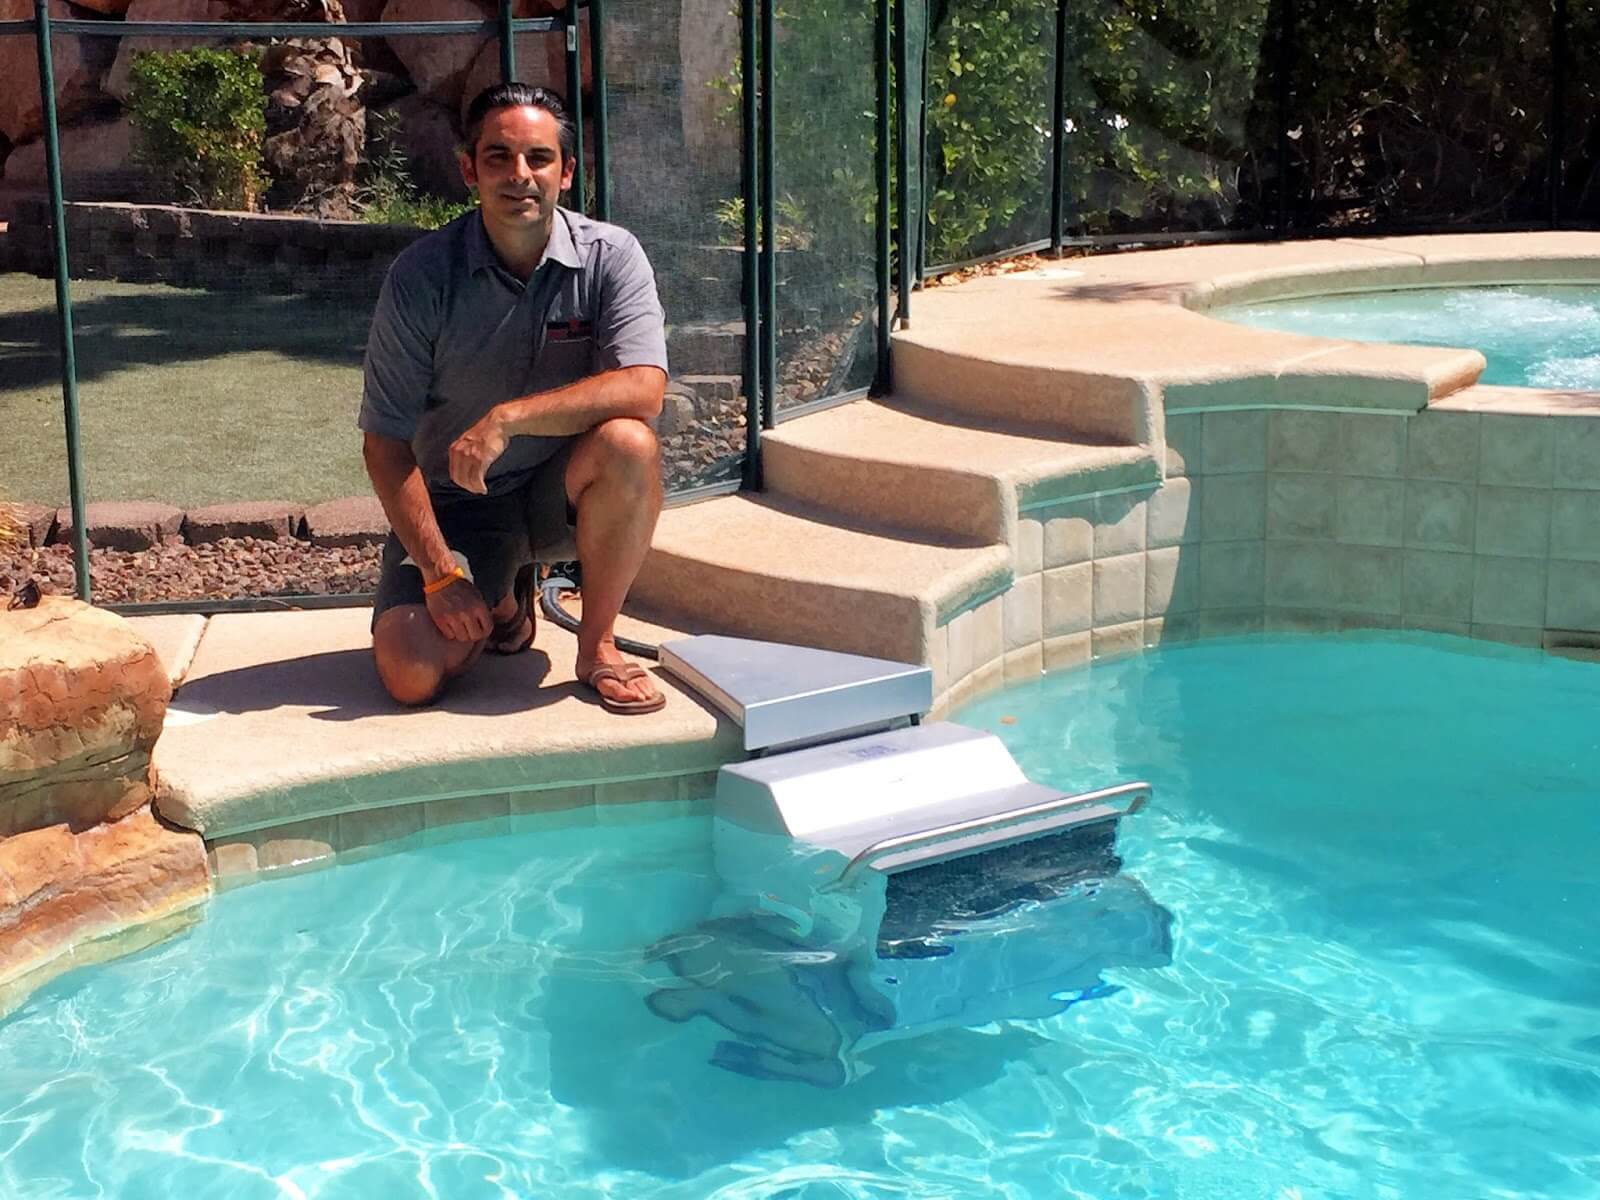 Rod S with the Endless Pools Fastlane he uses for Ironman triathlon training